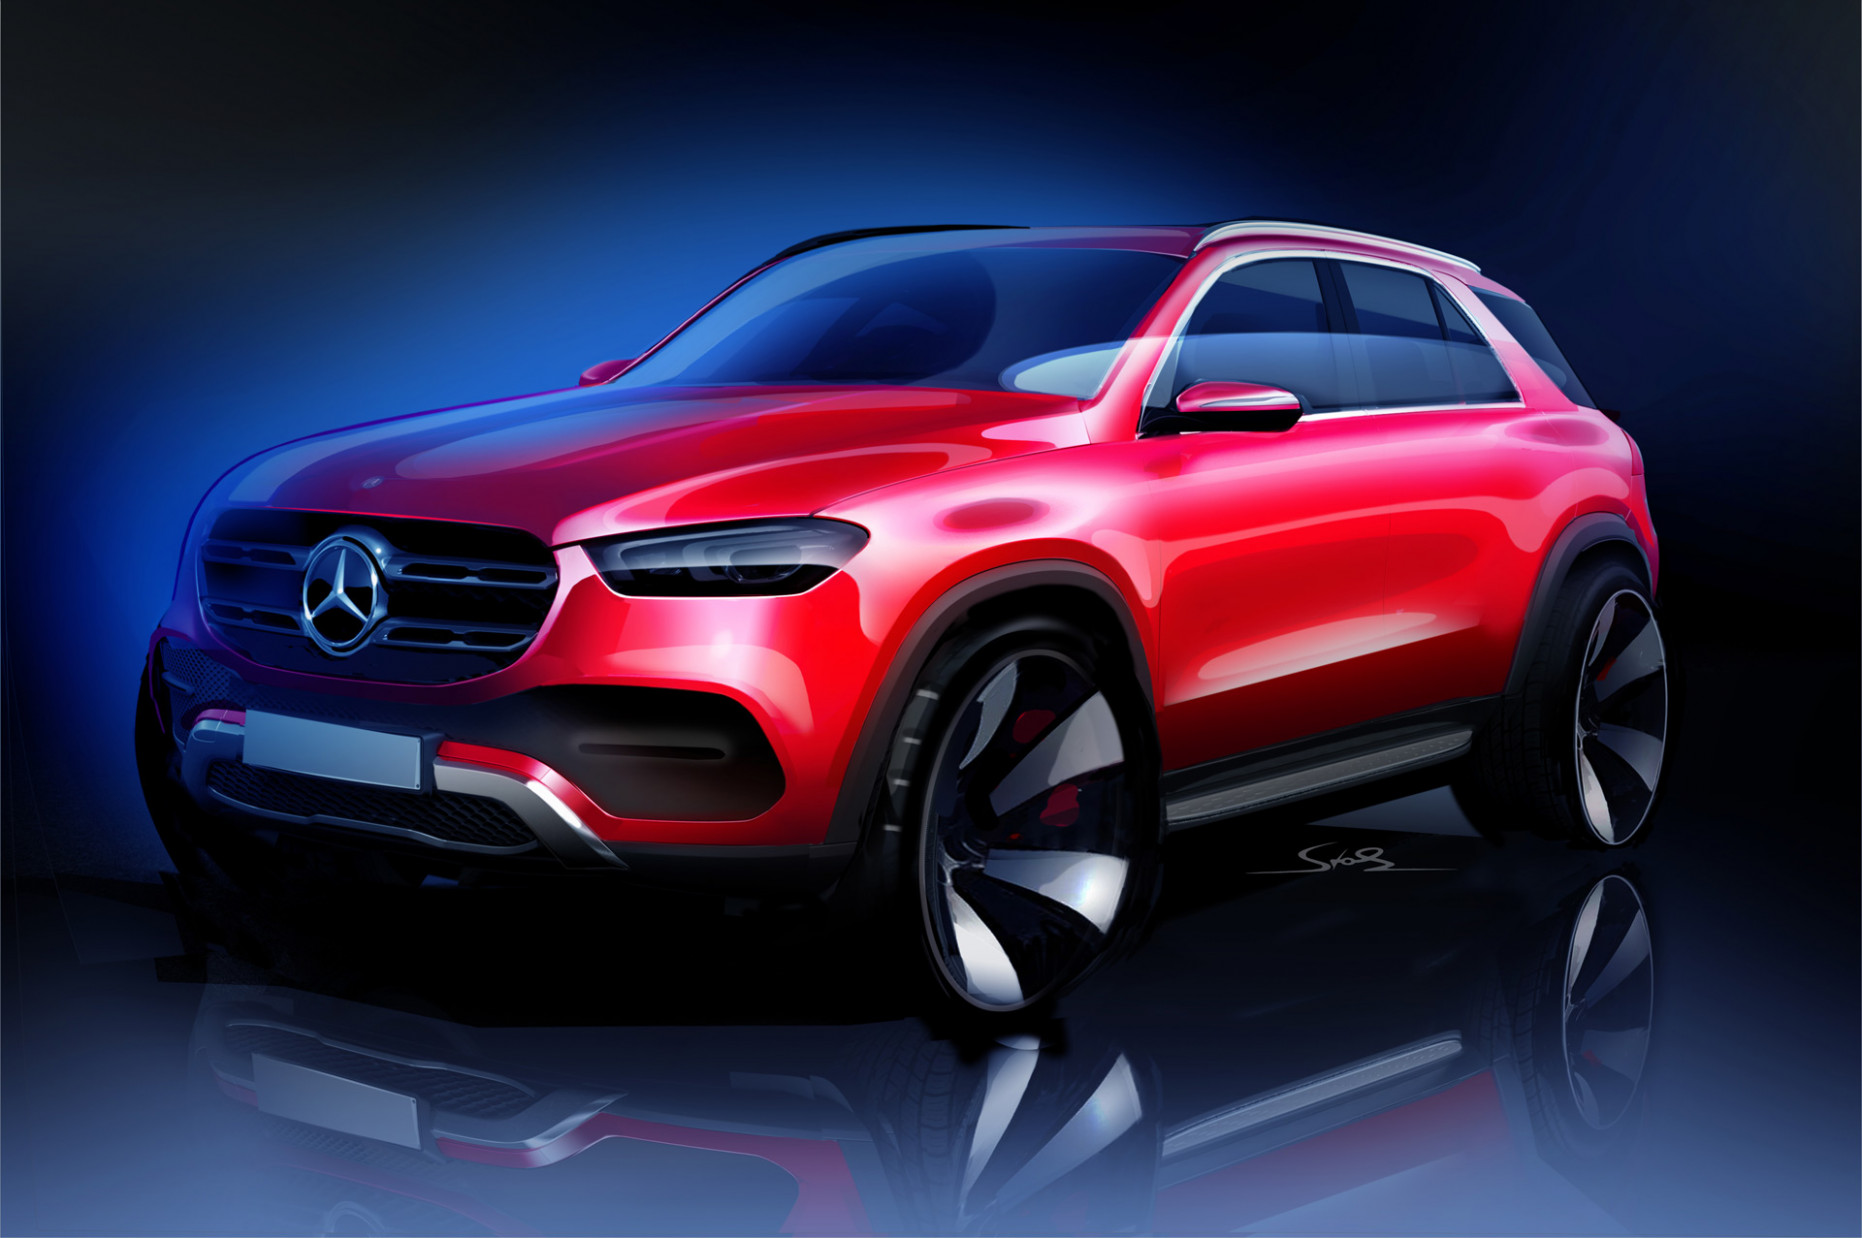 Mercedes-Benz teases 12 GLE luxury SUV - mercedes suv 2020 models